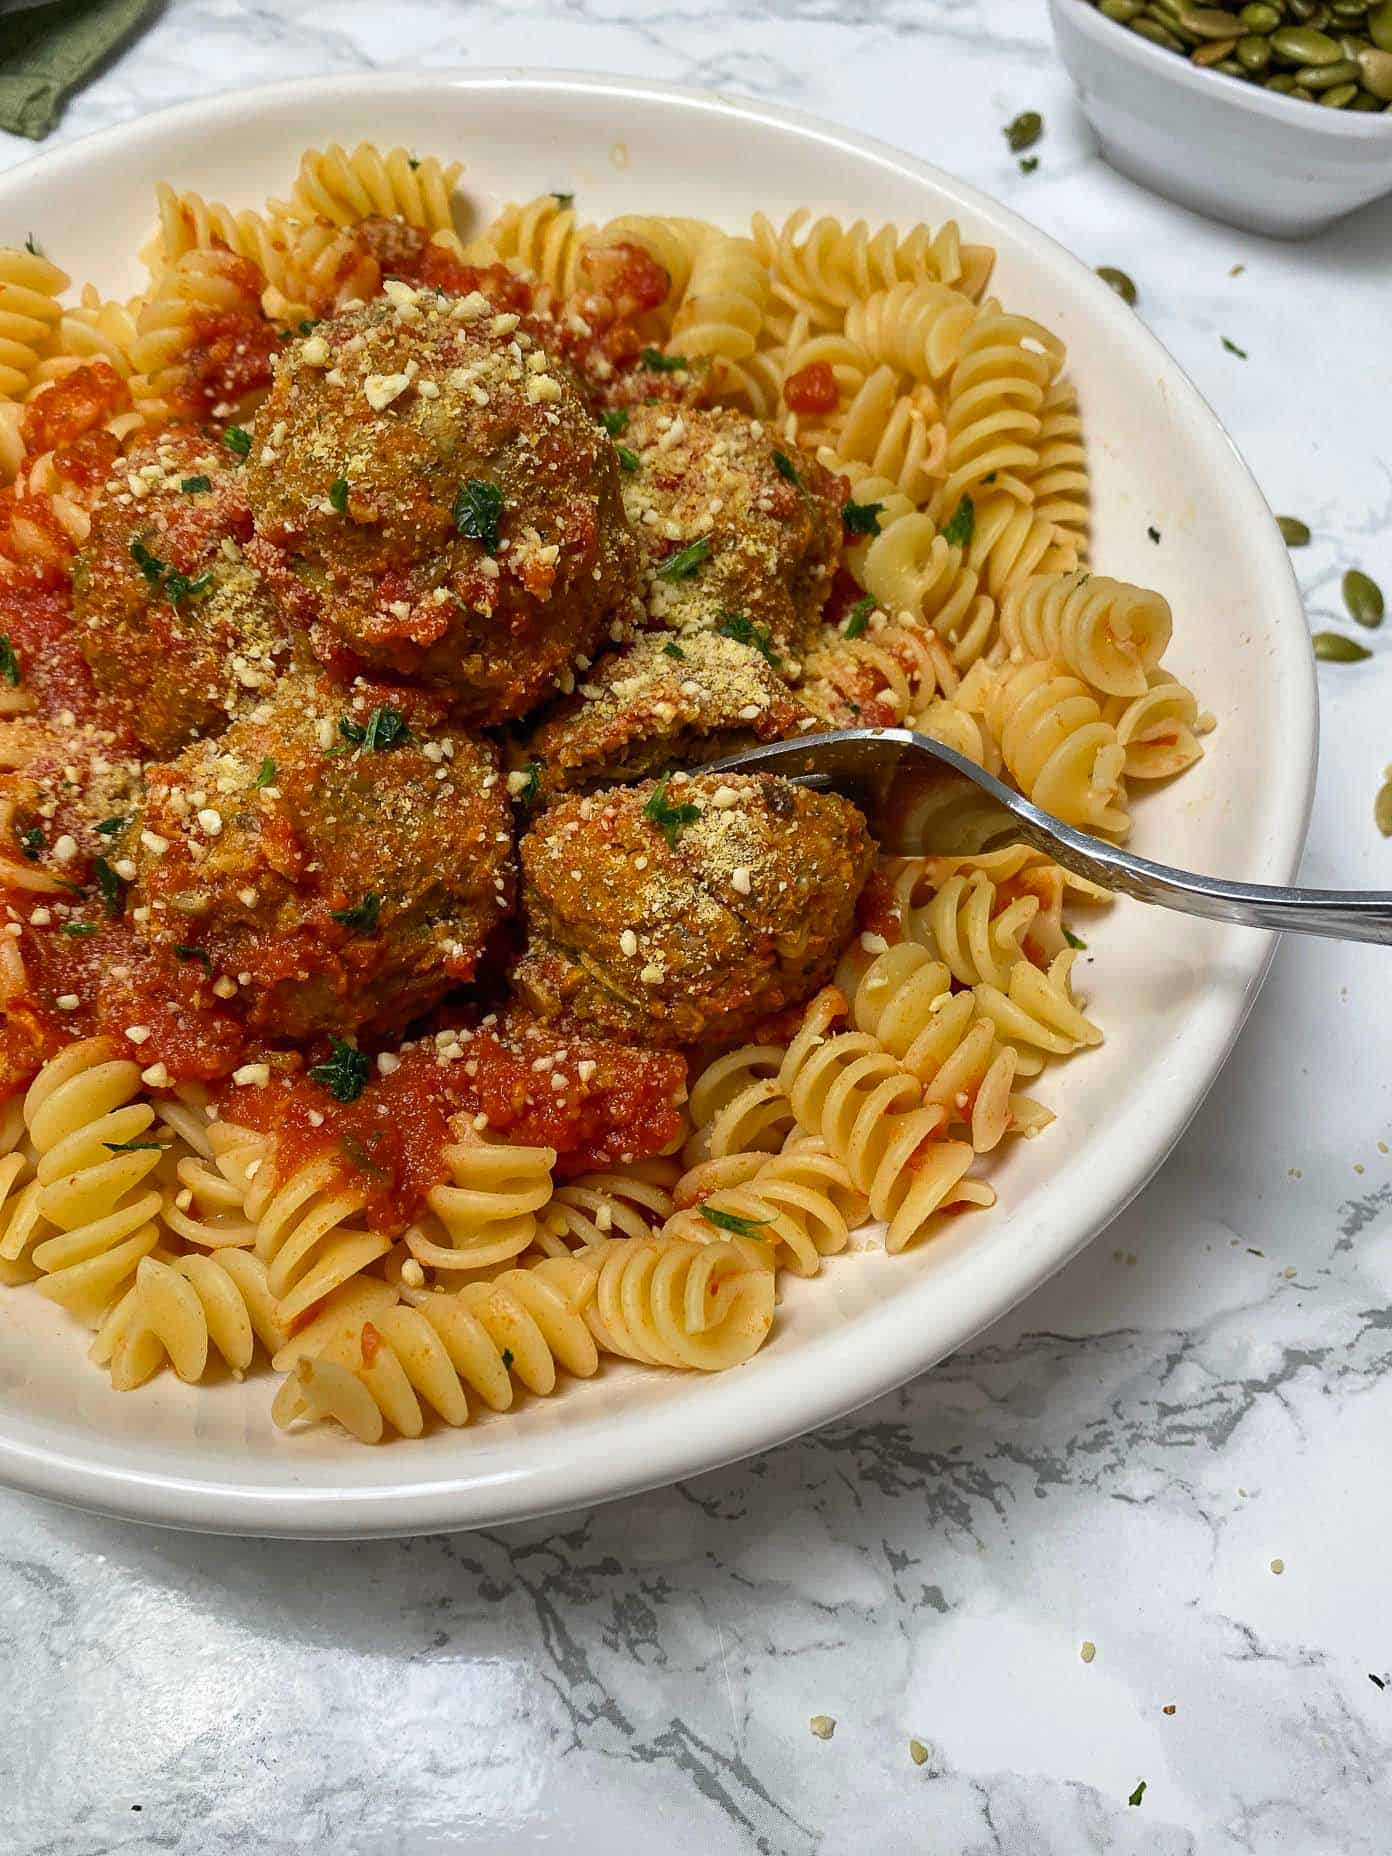 fork cutting into vegan meatball over bed of pasta